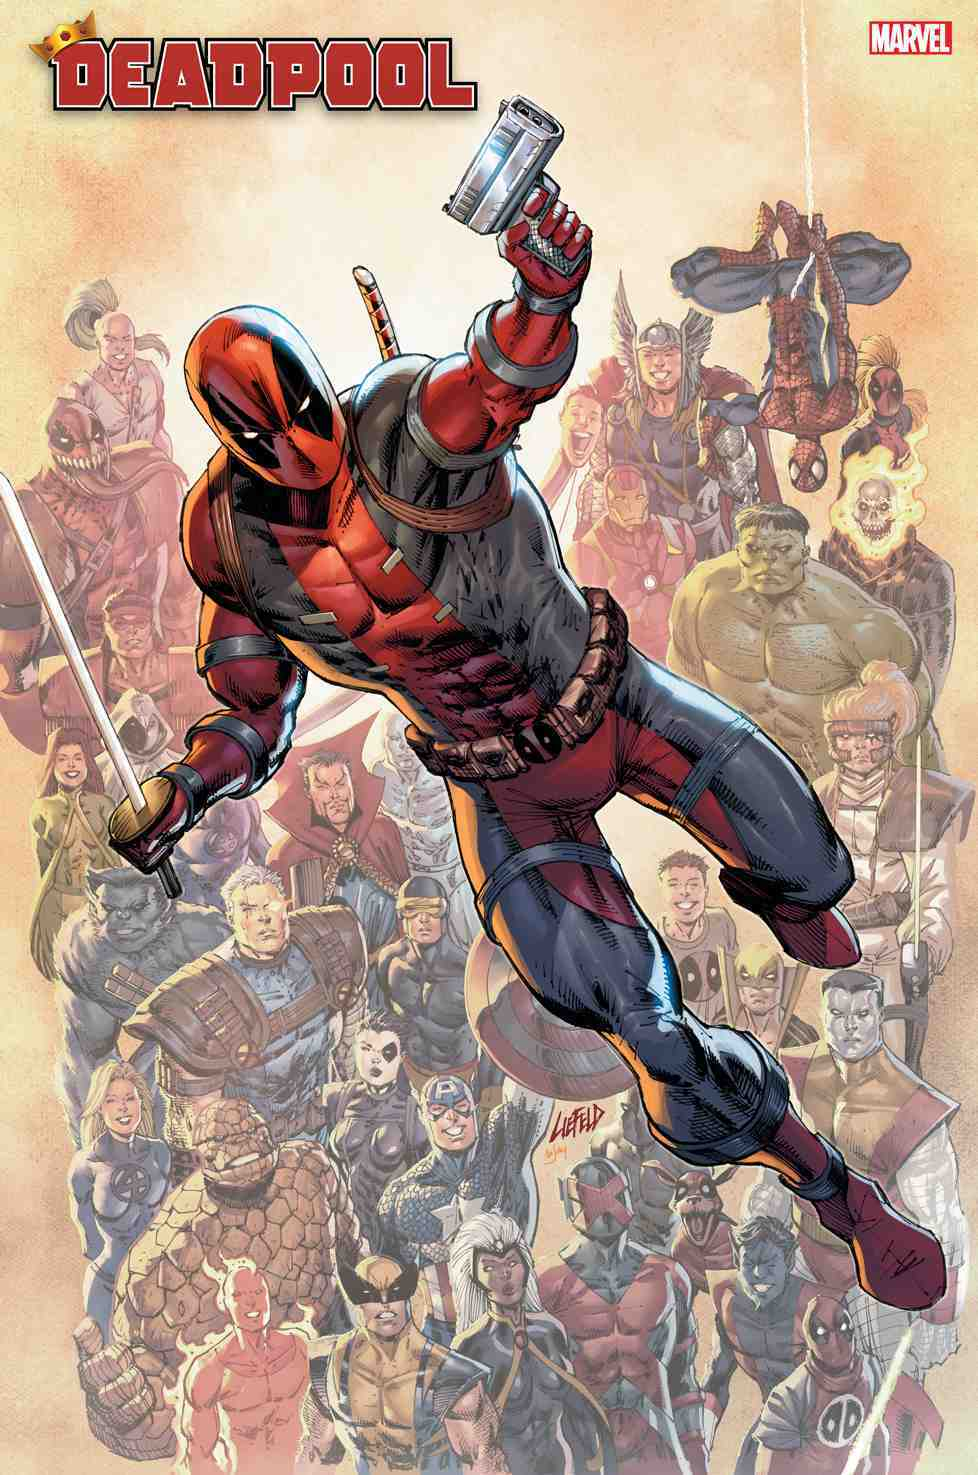 Deadpool nerdy 30 rob liefeld cover